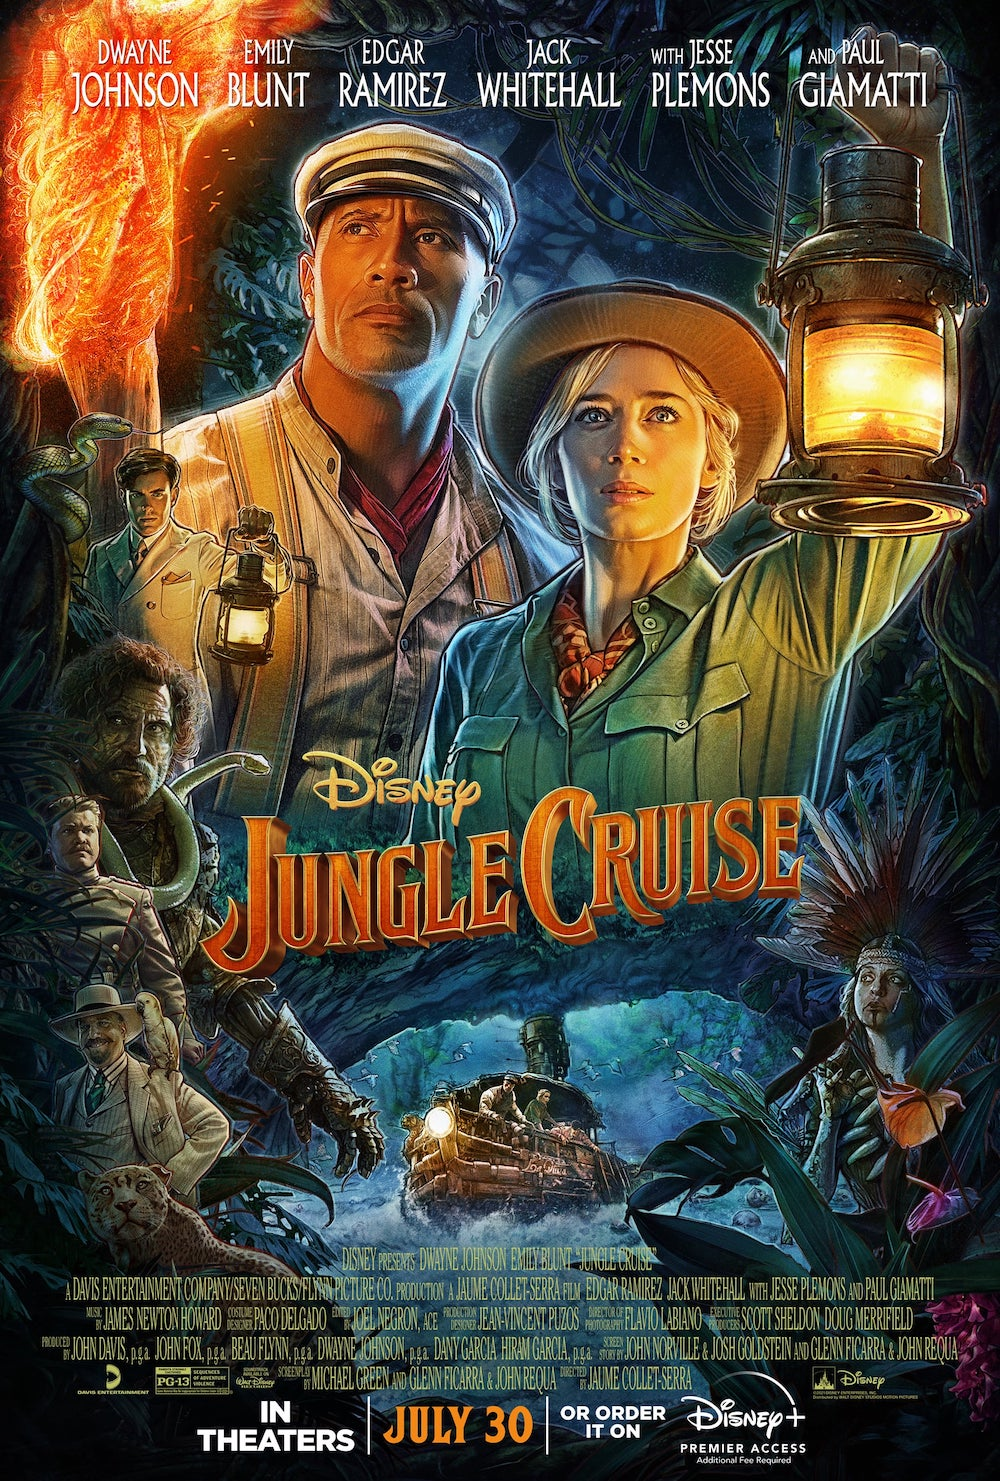 Disney's Jungle Cruise Theatrical Poster